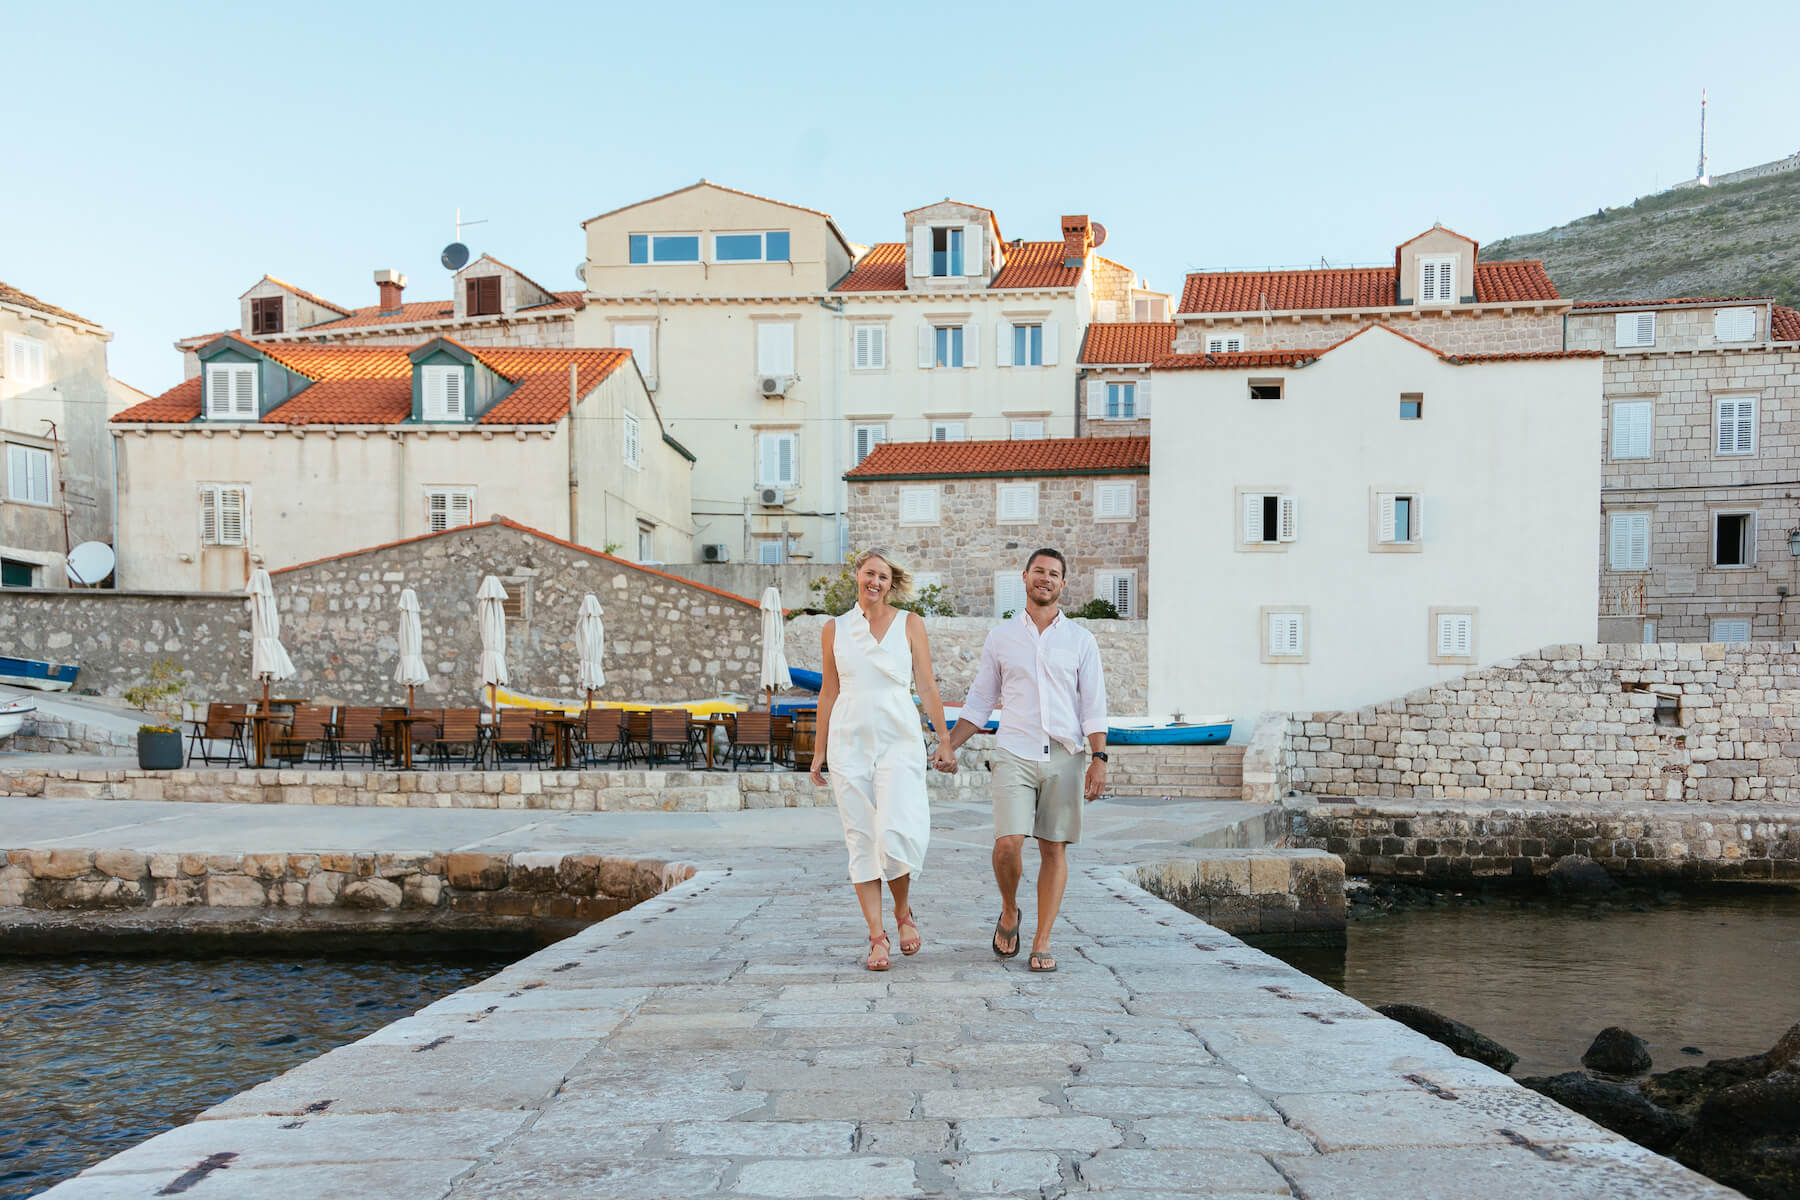 a woman in a white jumpsuit and their partner are holding hands and taking photos on a photoshoot with Flytographer in Dubrovnik, Croatia.